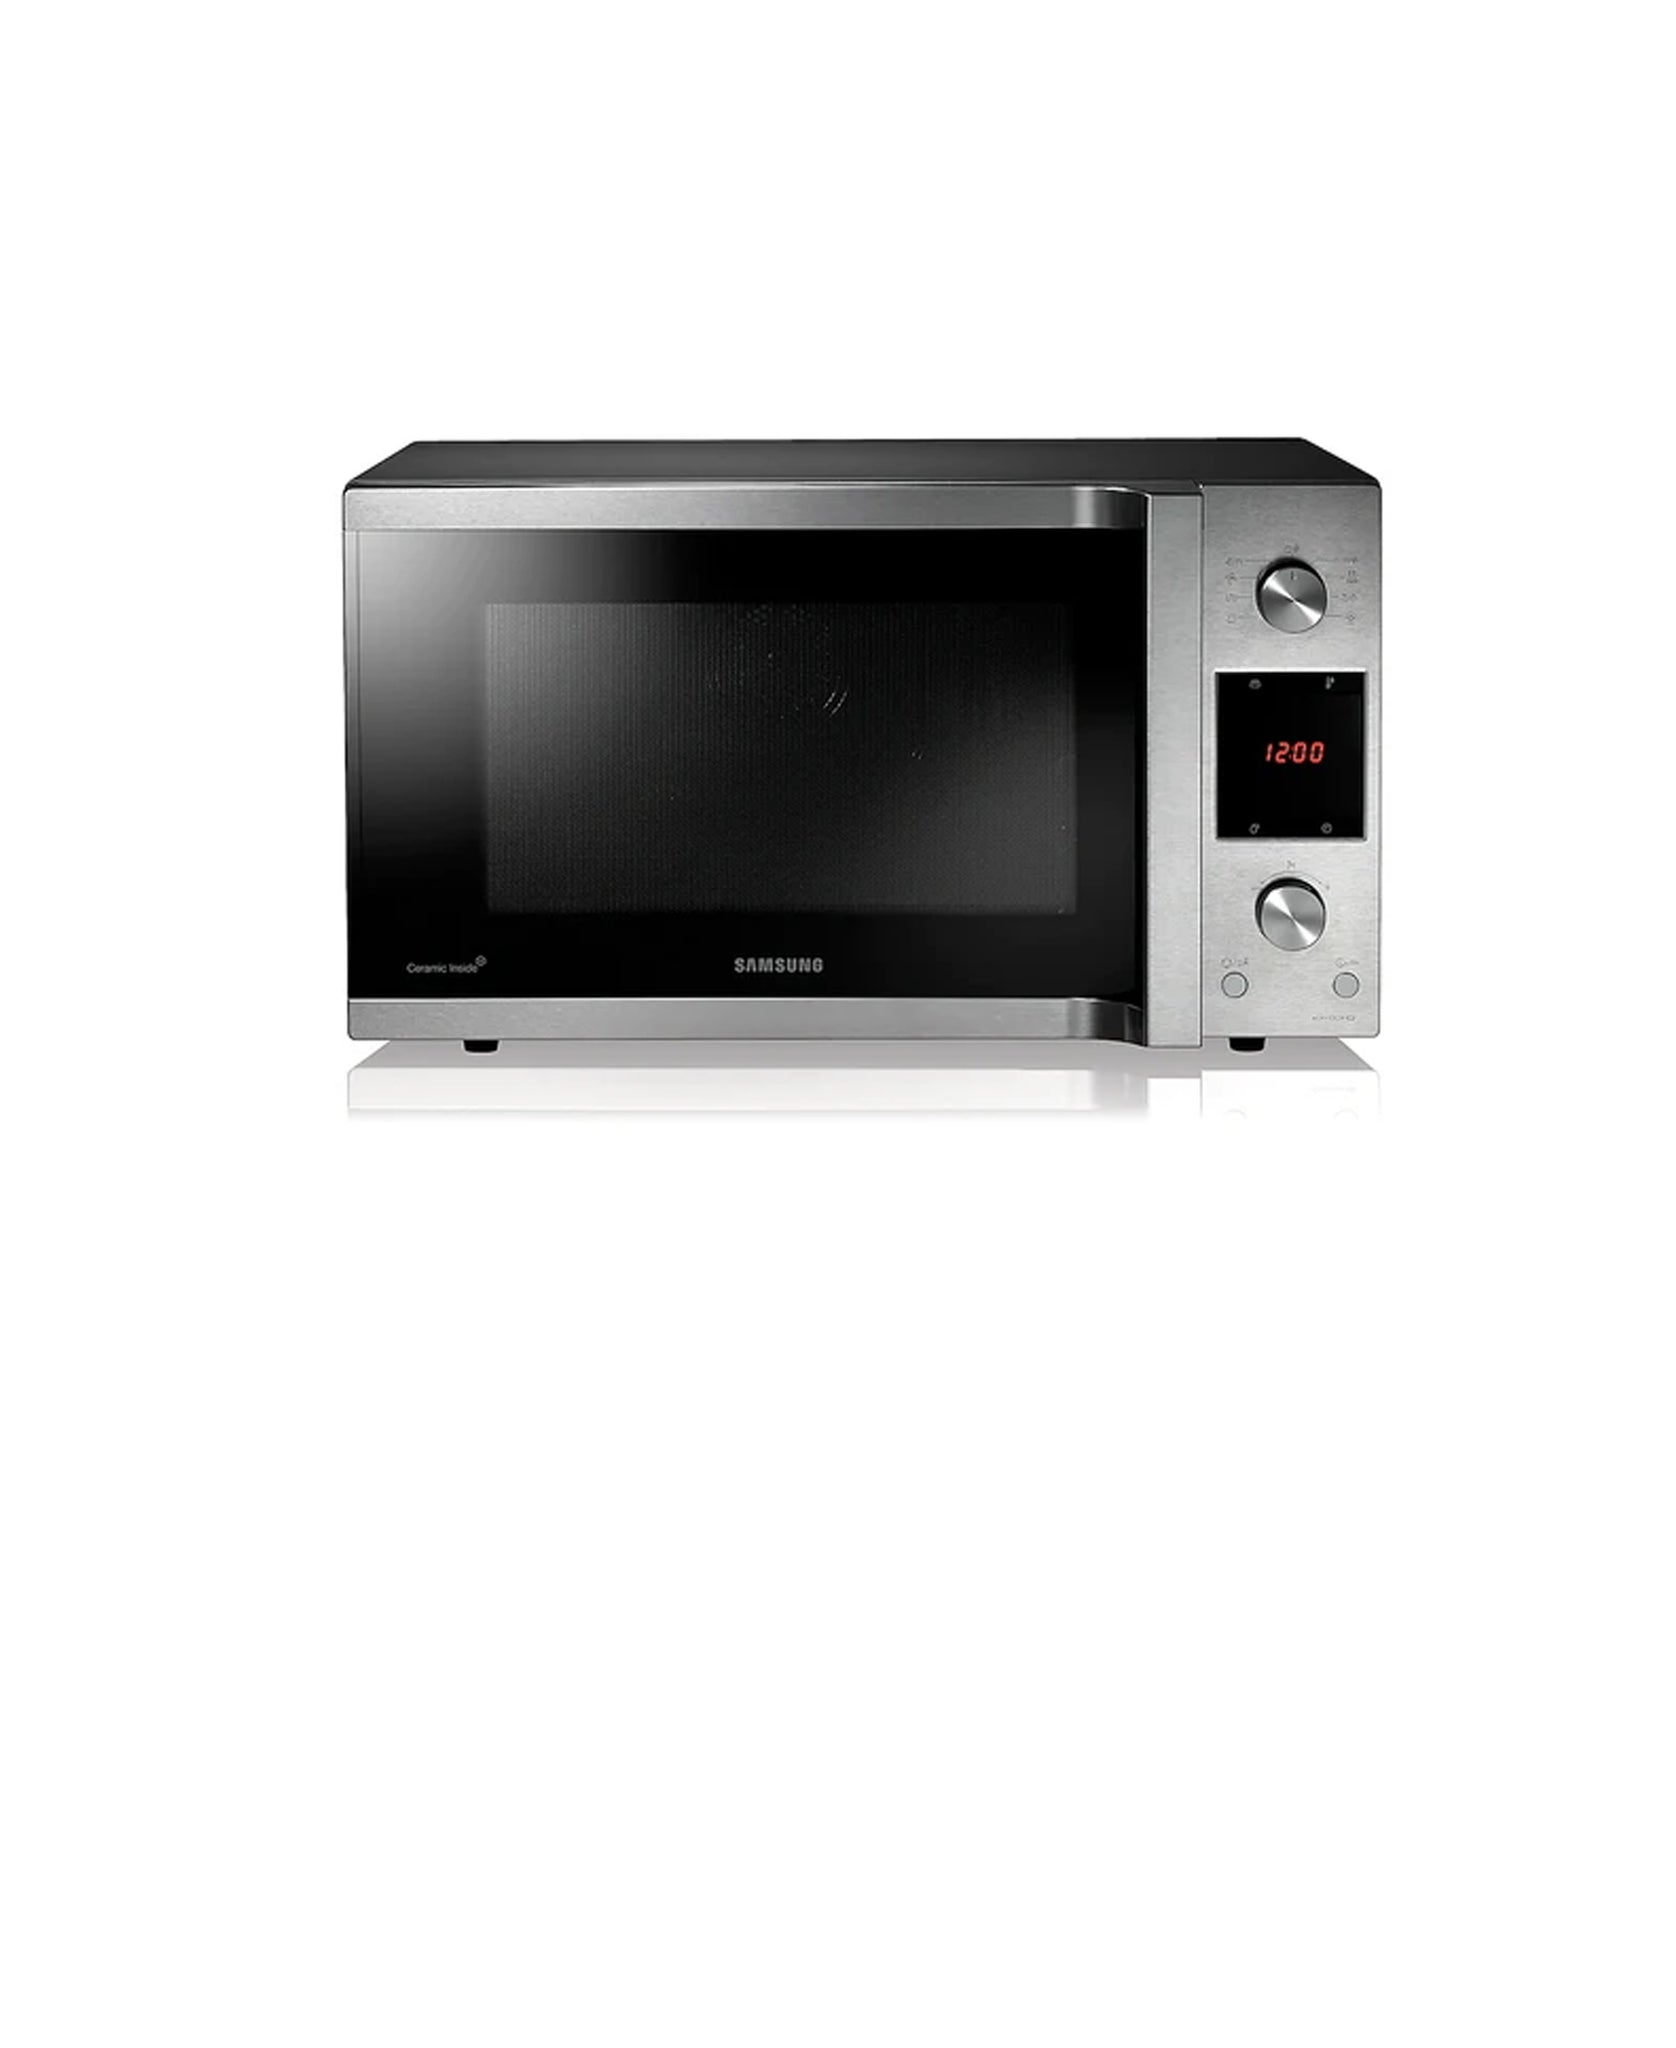 Samsung 45L Convection Microwave Oven MC456TBRCSR